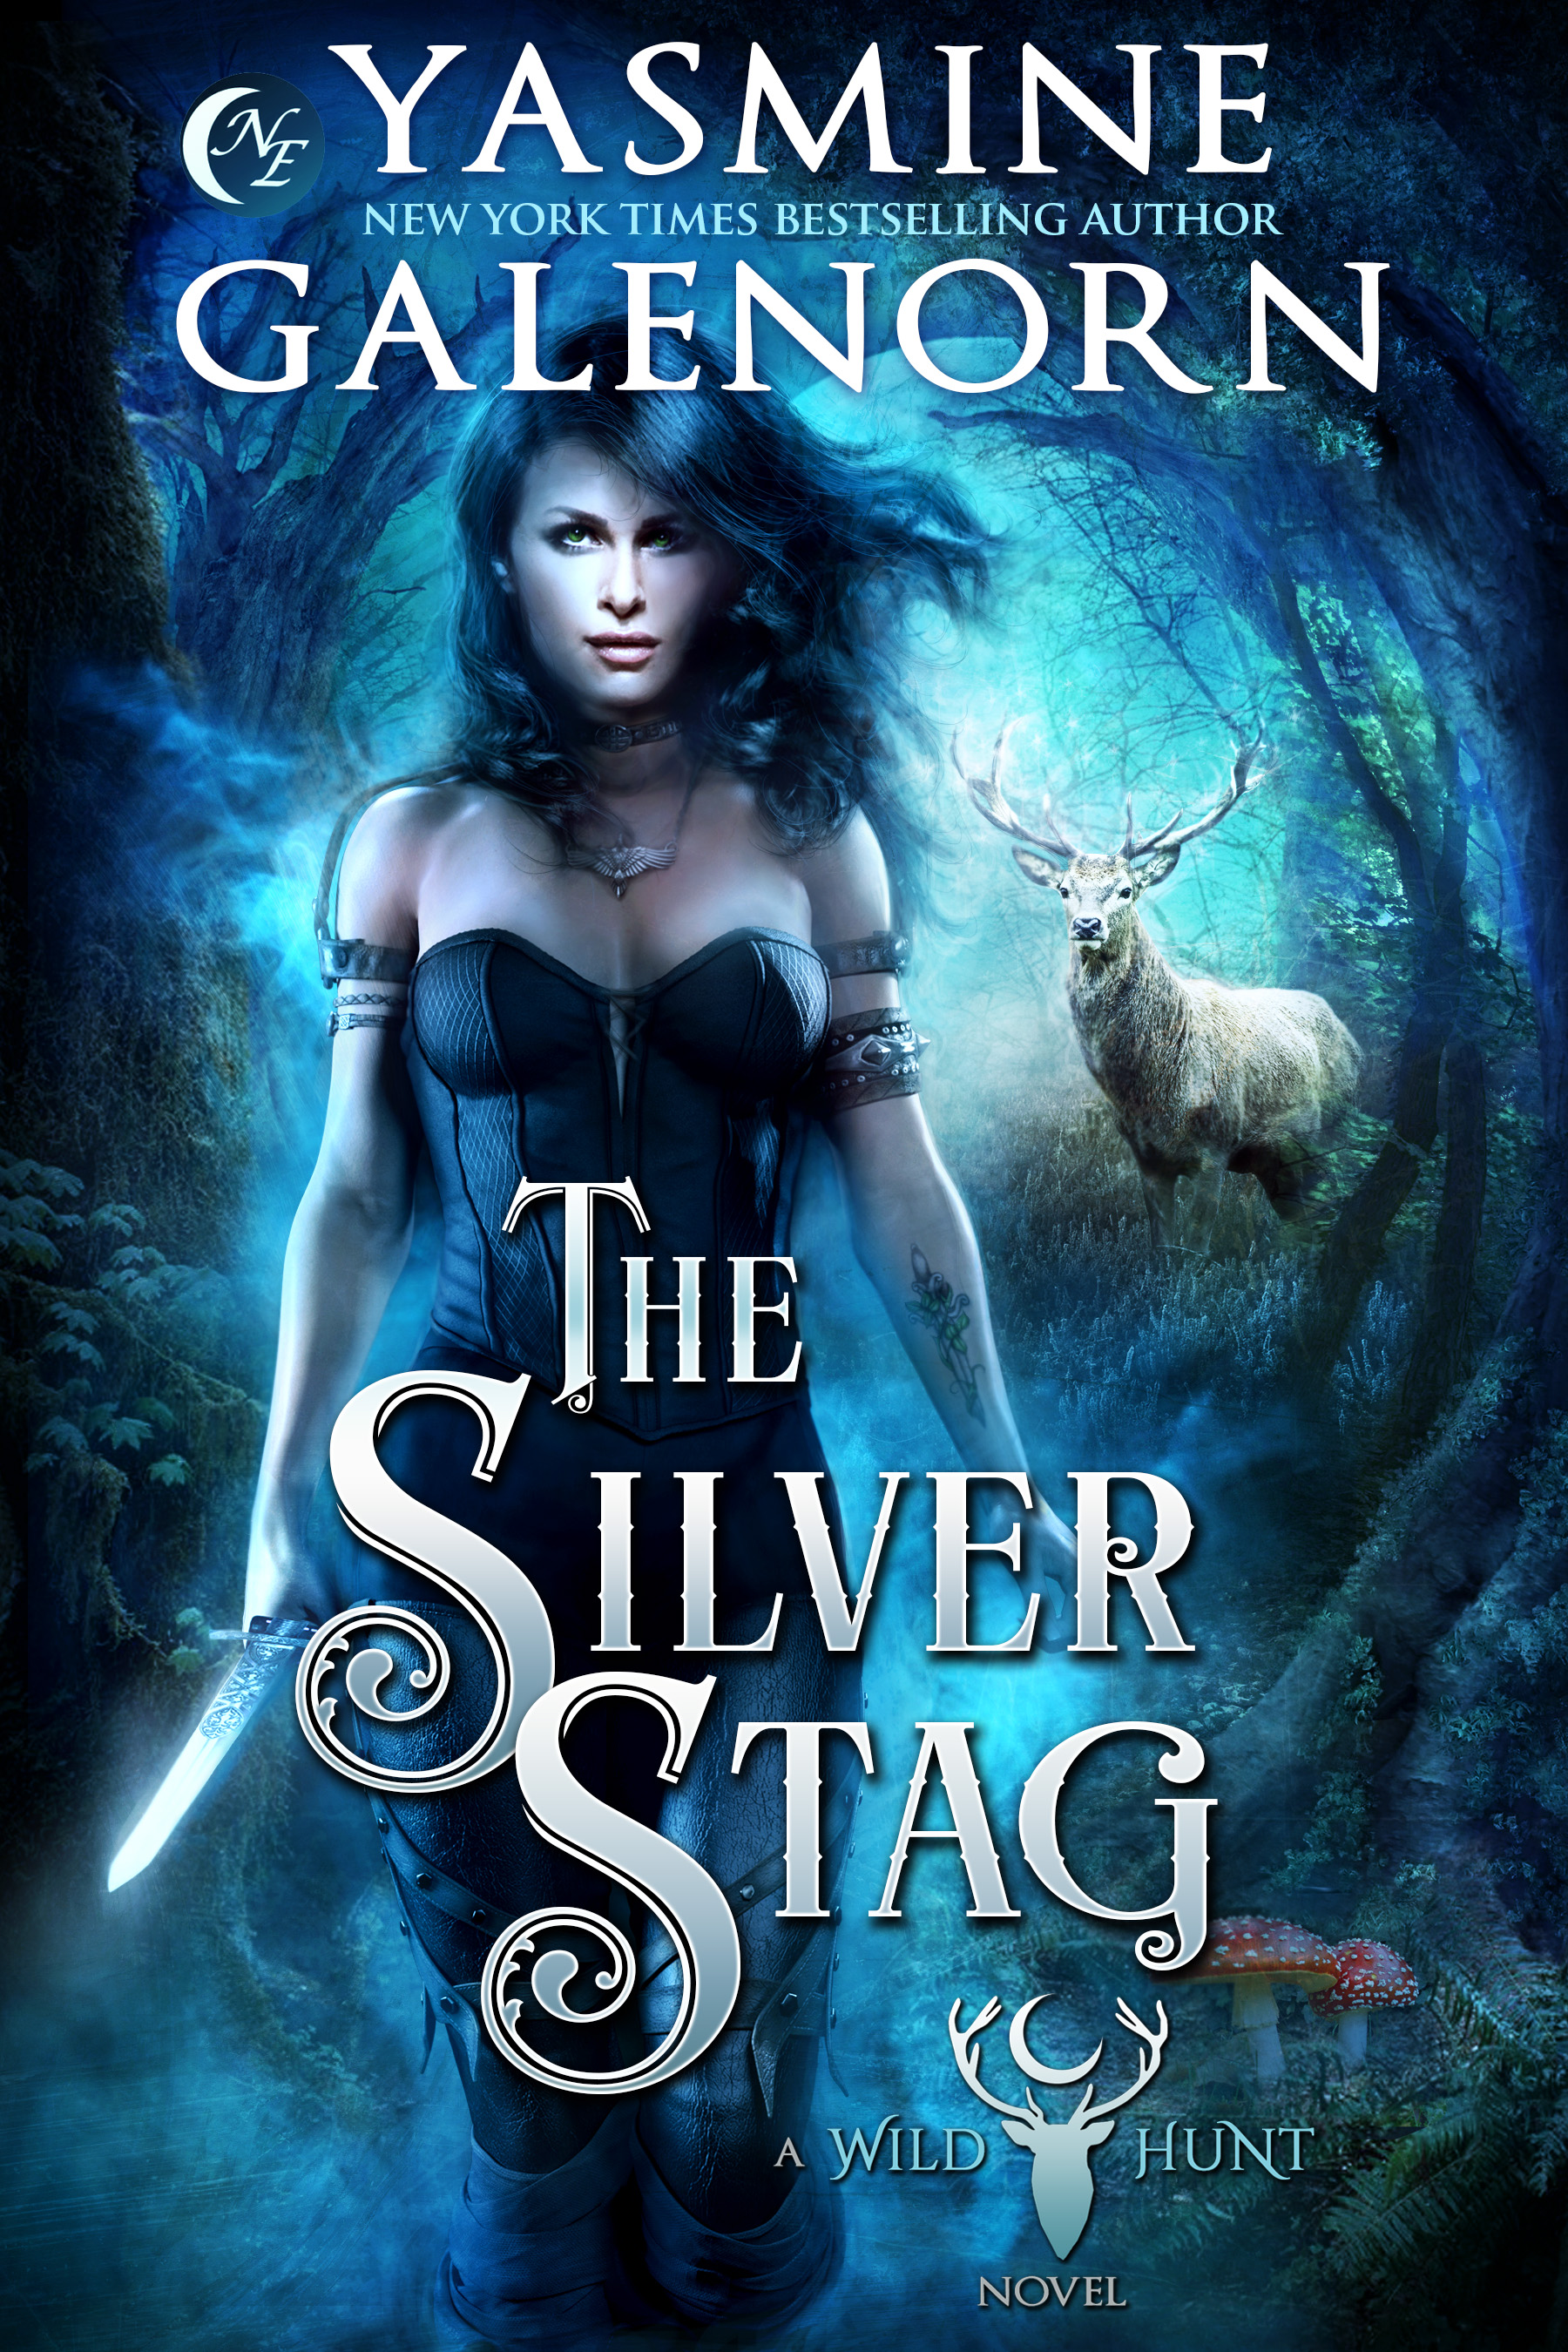 Excerpt: The Silver Stag